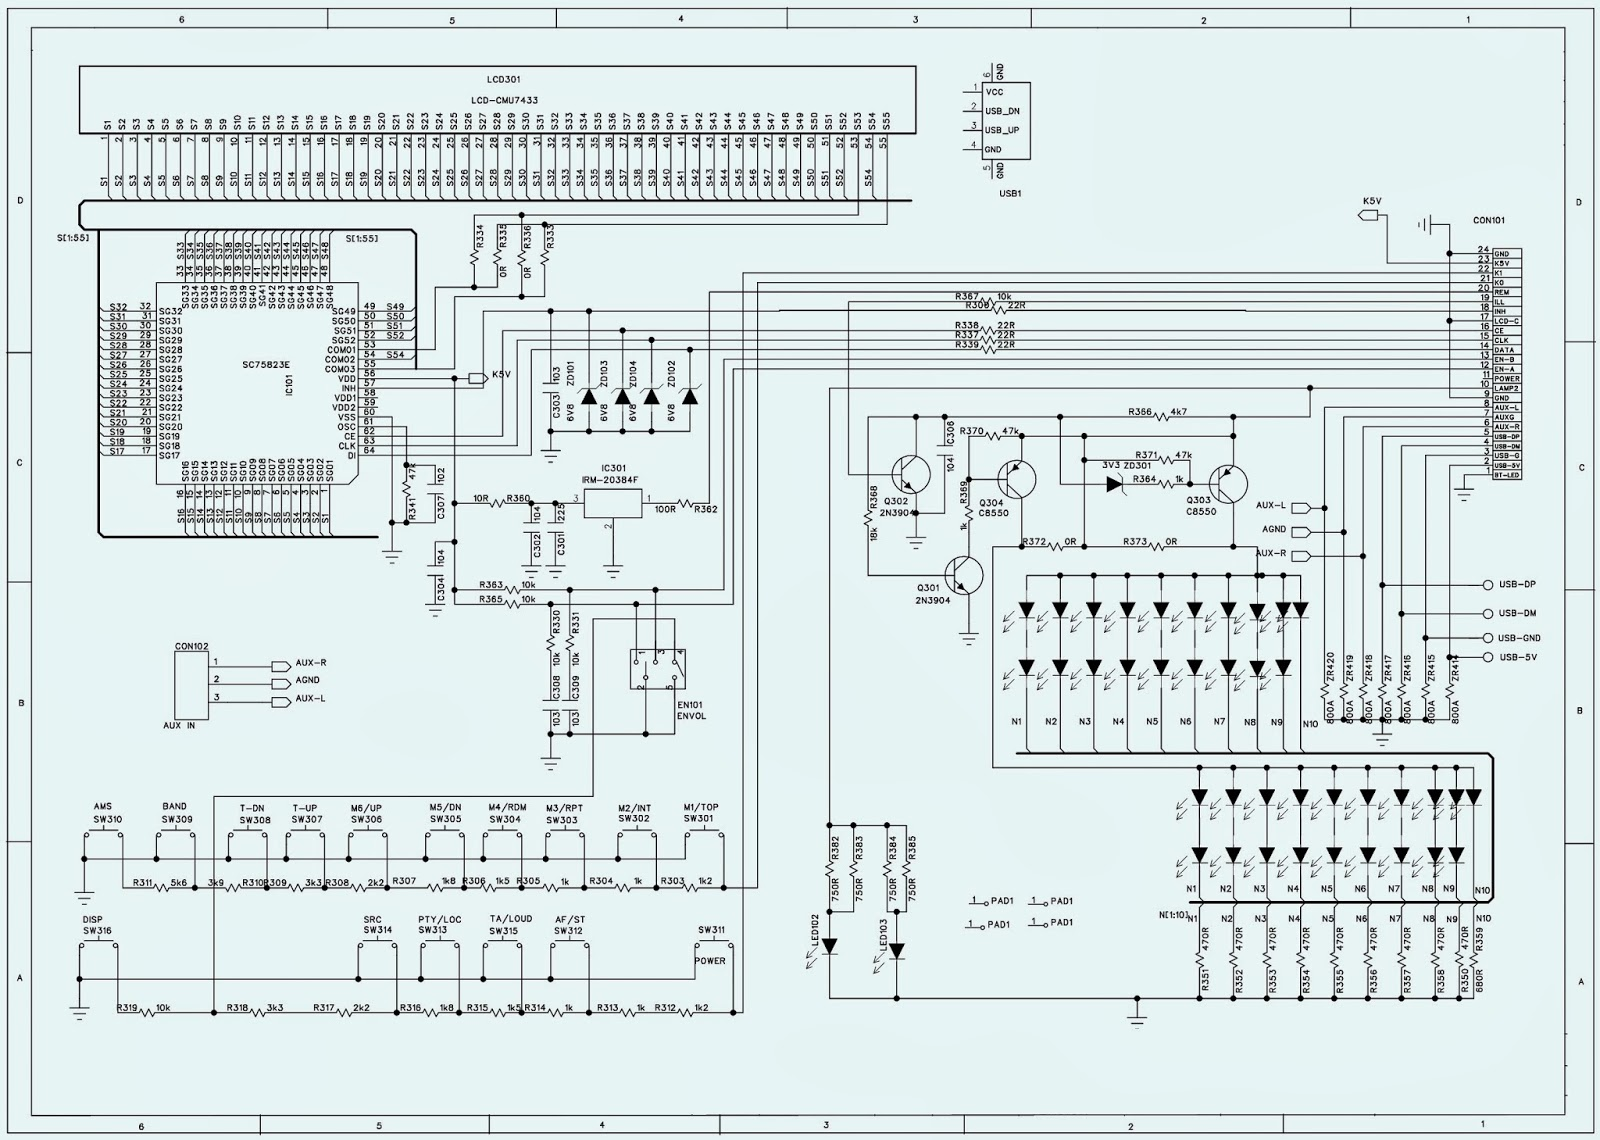 Excellent Hbd7310 Car Stereo Schematic Circuit Diagram Electro Help Wiring Wiring Cloud Hemtegremohammedshrineorg